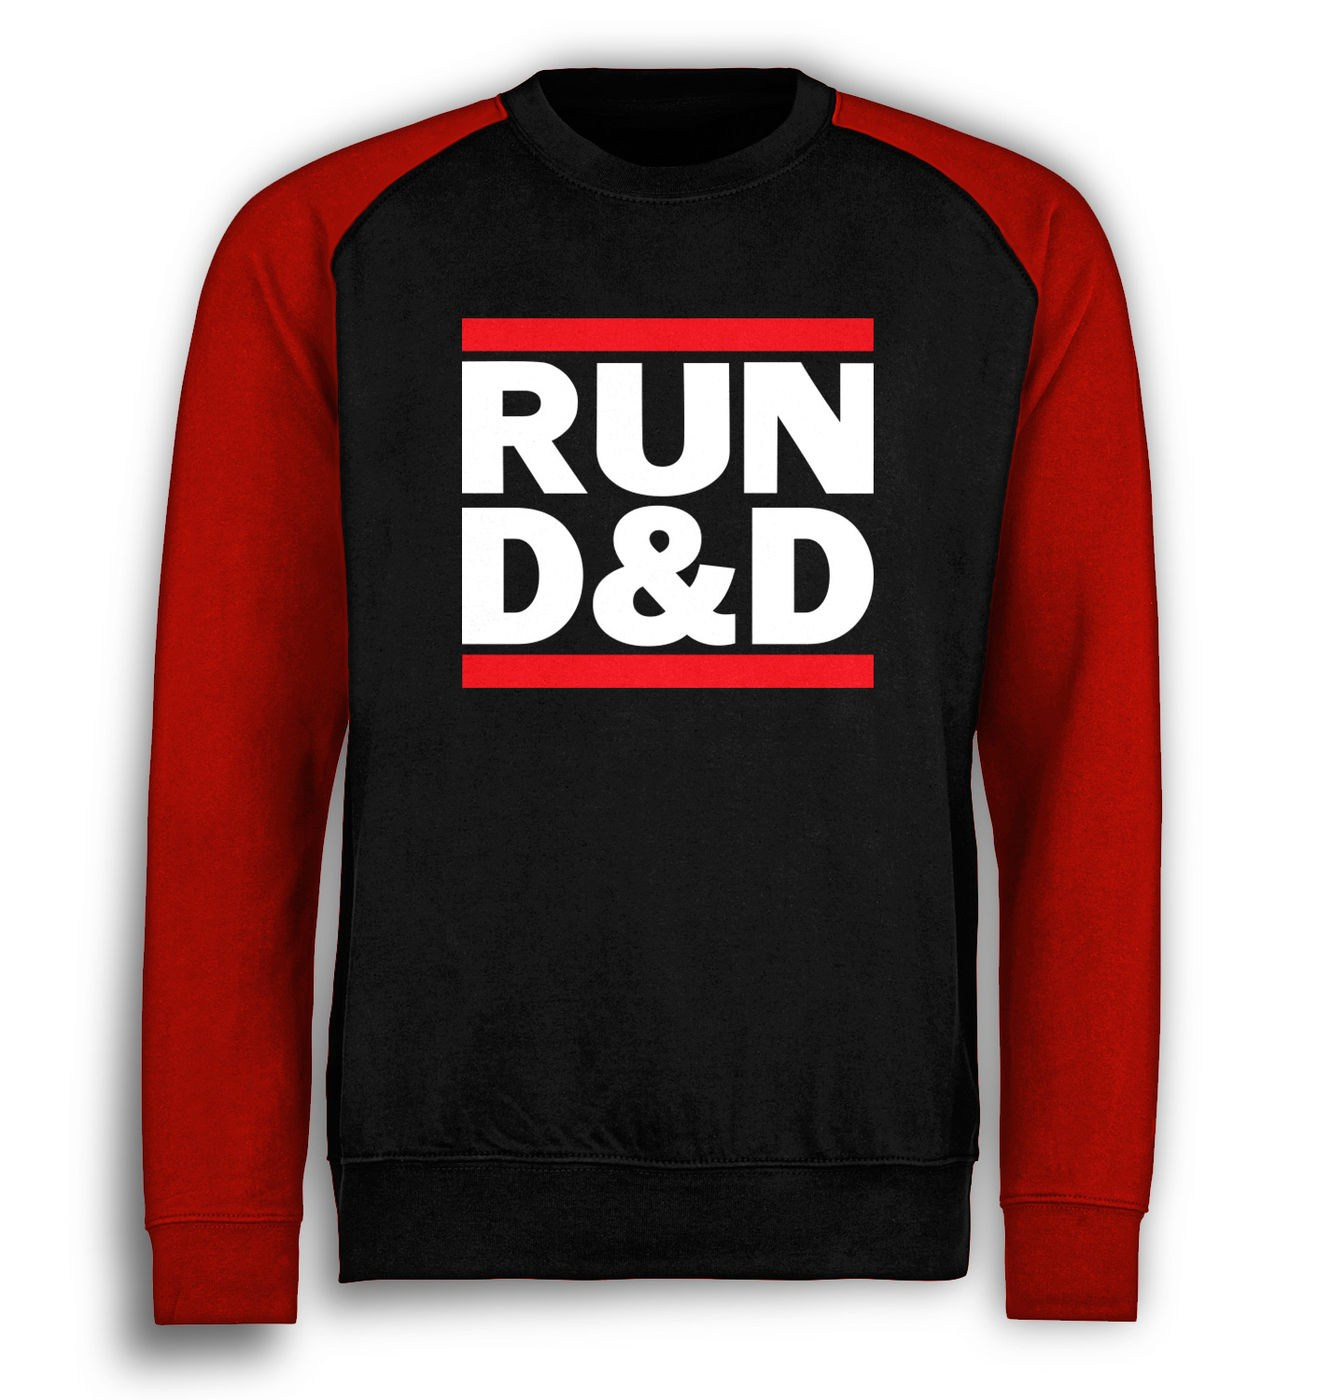 RUN D&D baseball sweatshirt by Something Geeky